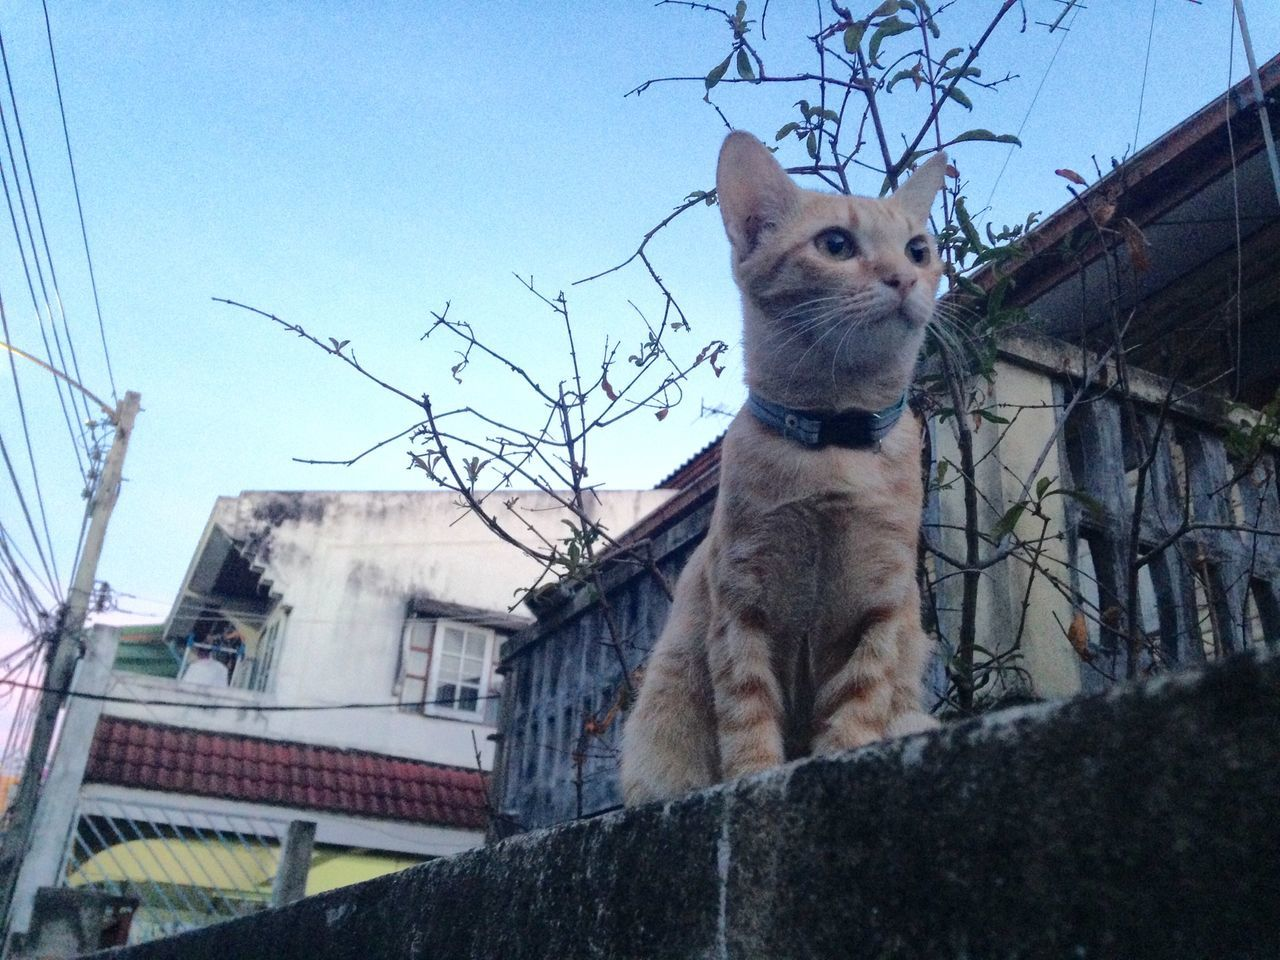 Little cat on wall Little Cat Thai Street Cat On Wall Opposite House Look At  Yellow Cat Kid Cat Bangbumru Charunsanitwong Bangkok Morning Sitting And Looking